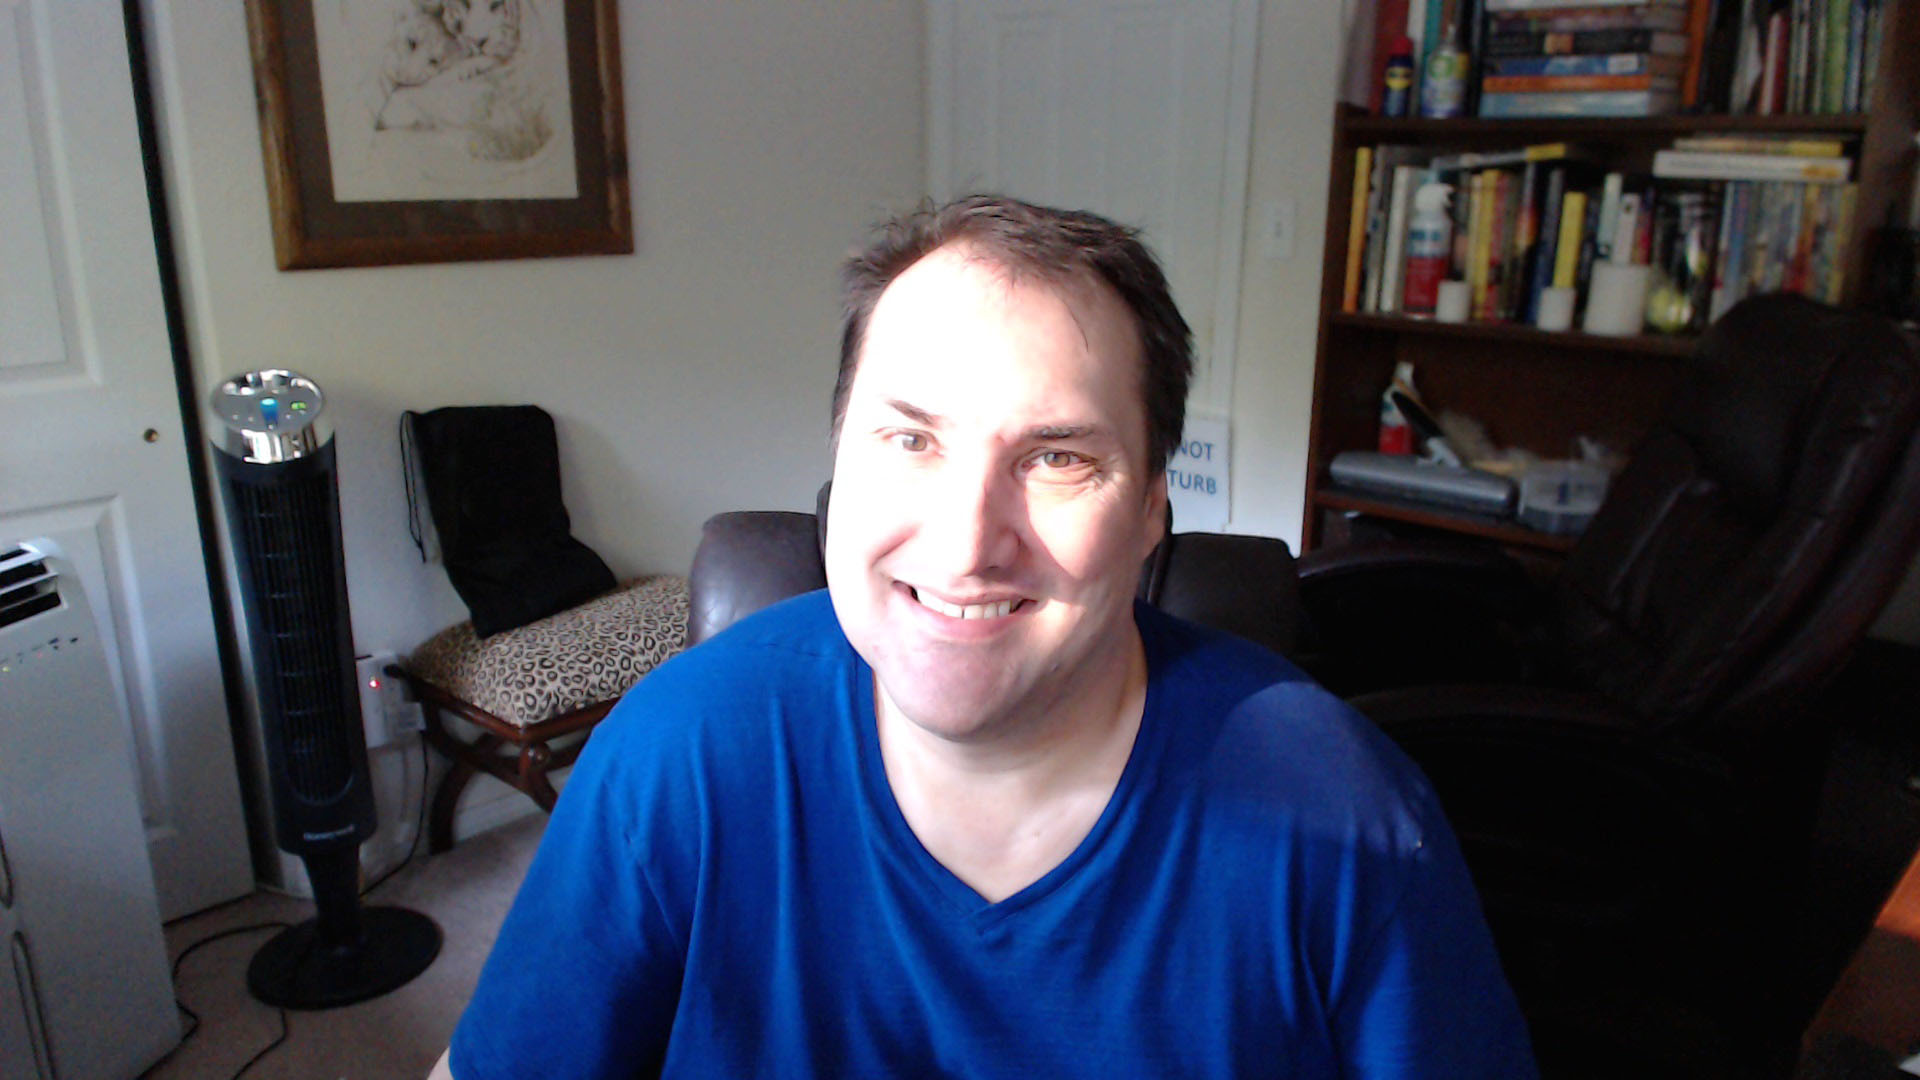 Ken Smiling Webcam Pic at 51